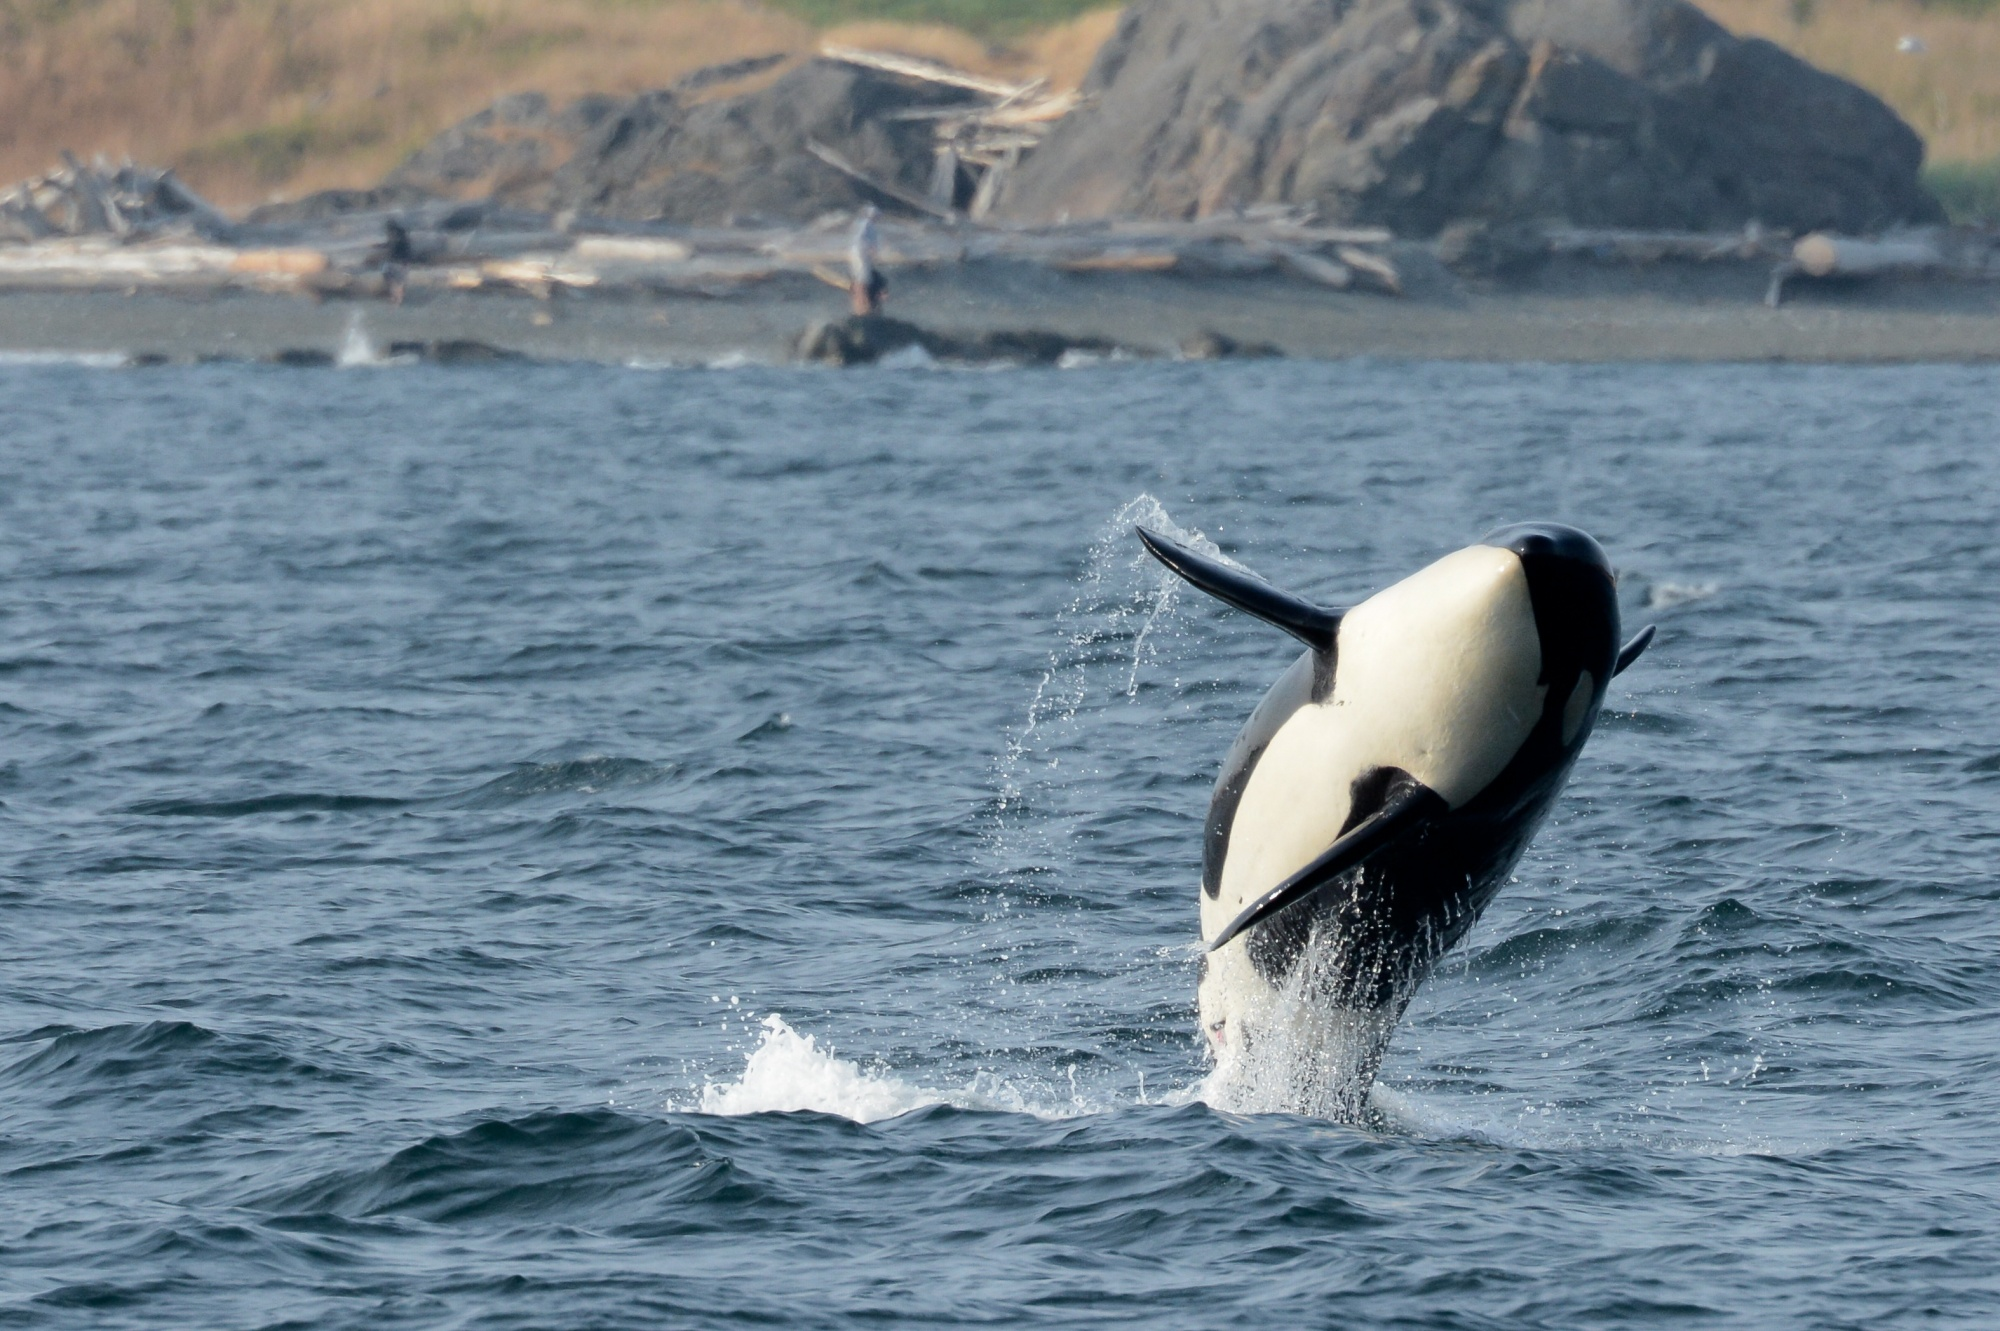 Best remote destinations, orca whale jumping out of the ocean in the San Juan Islands Washington near Victoria Canada